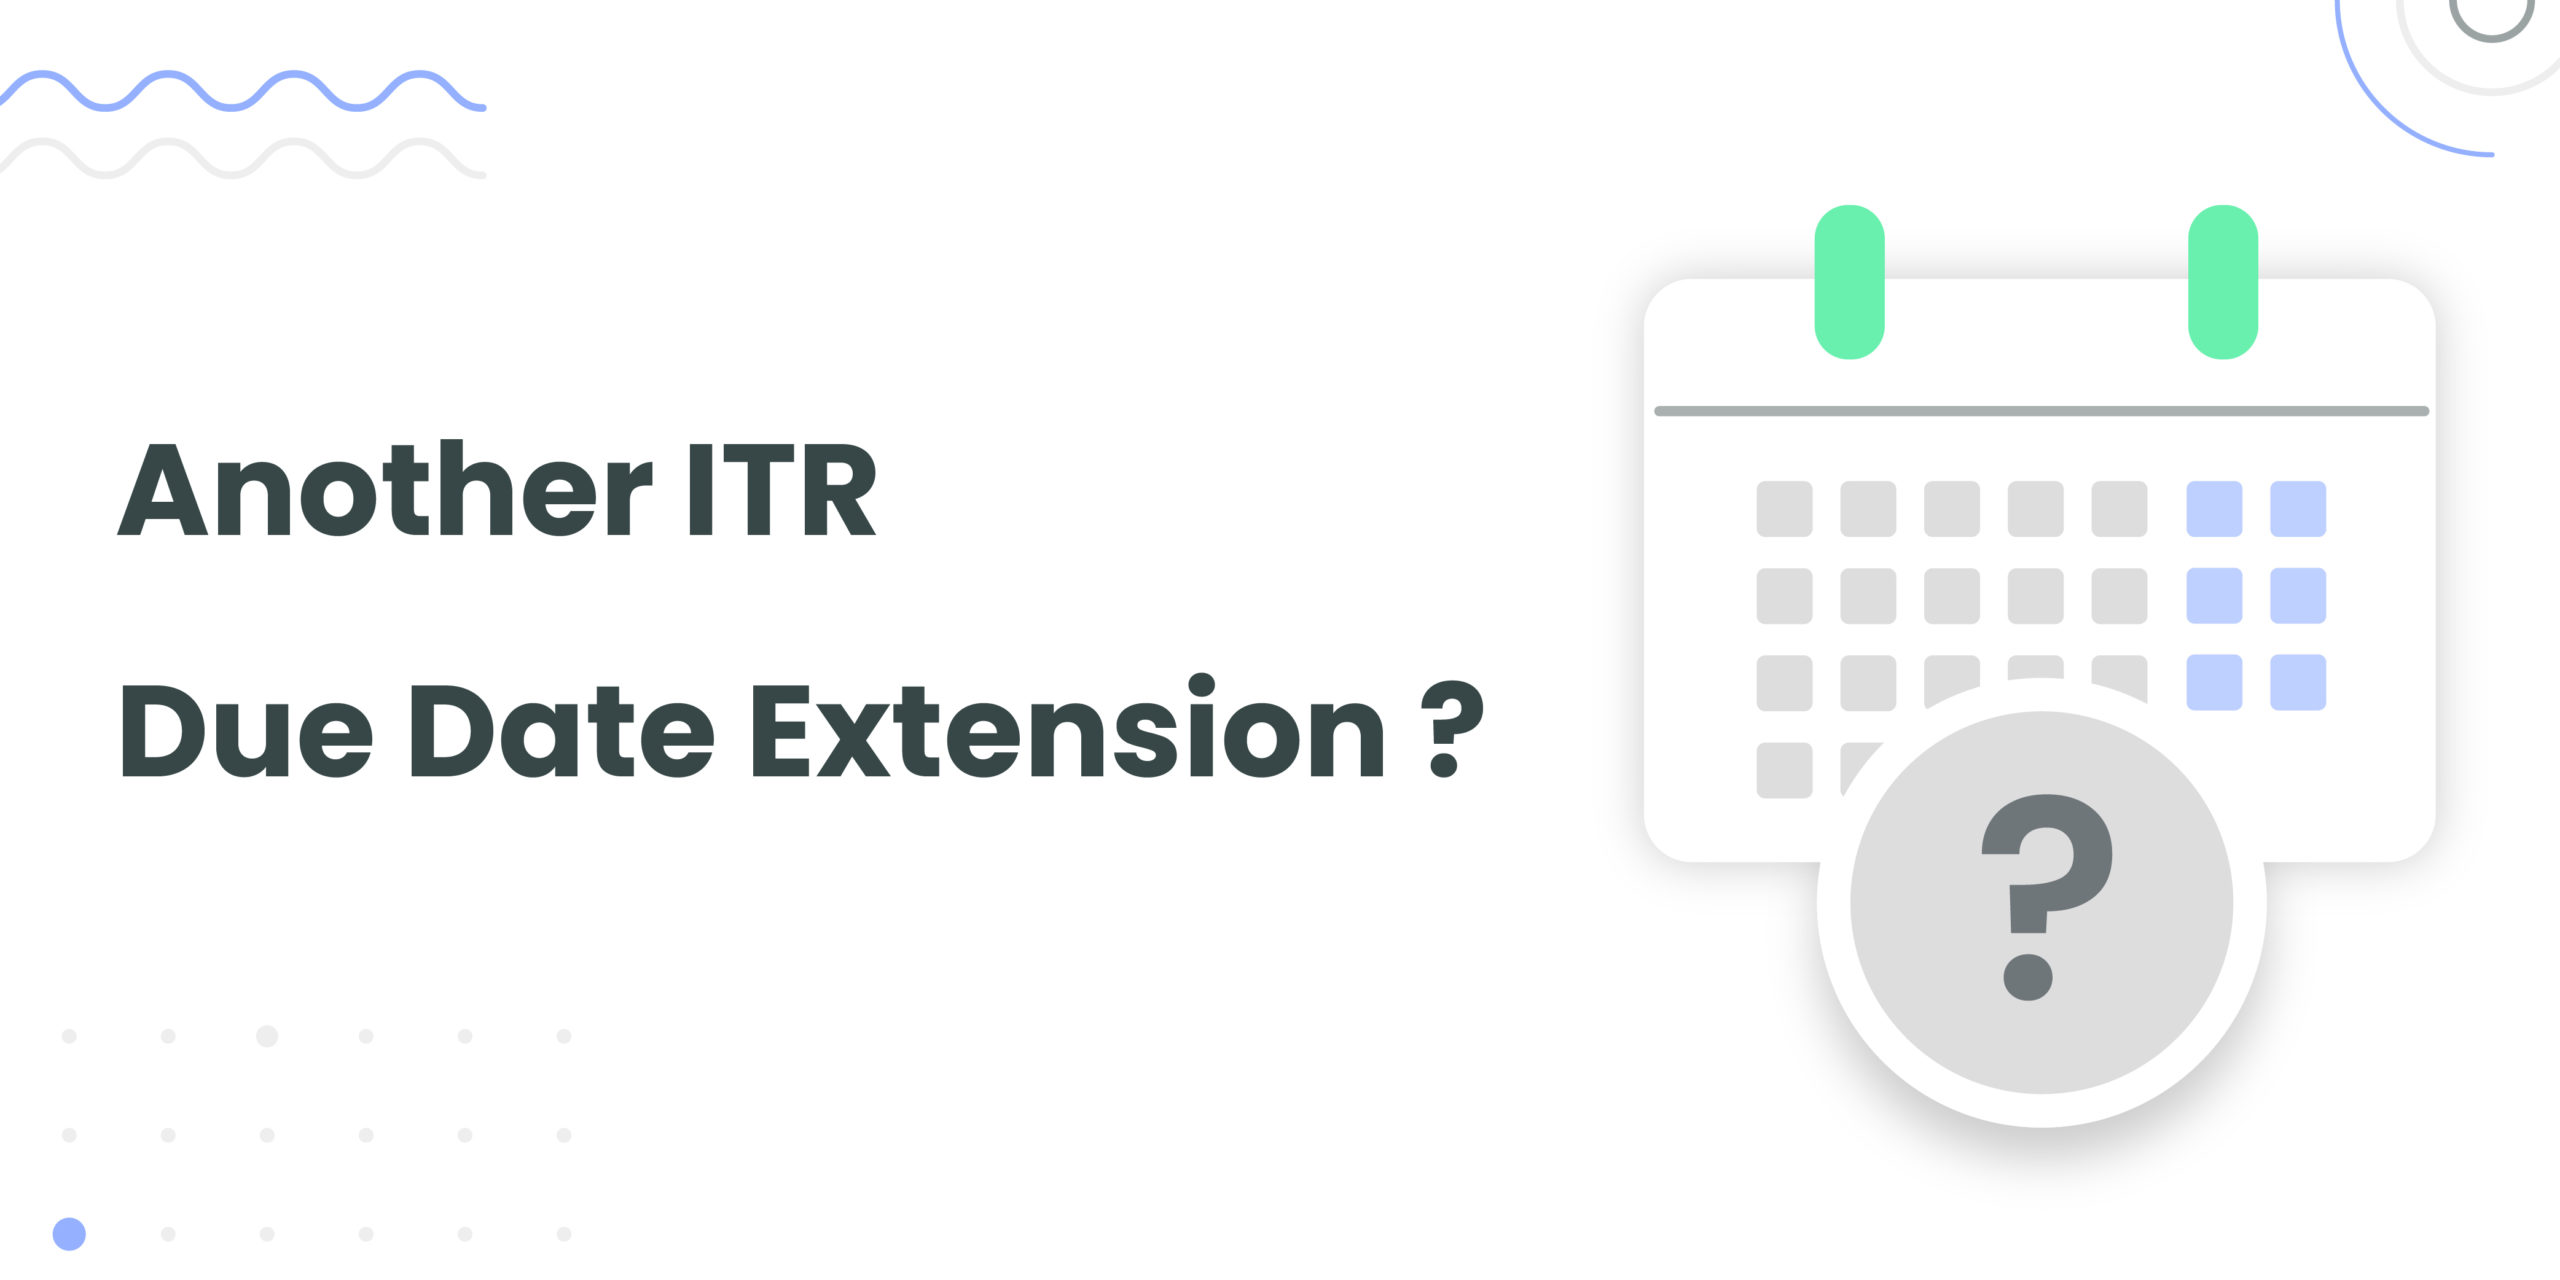 Are We Expecting Another ITR Due Date Extension?